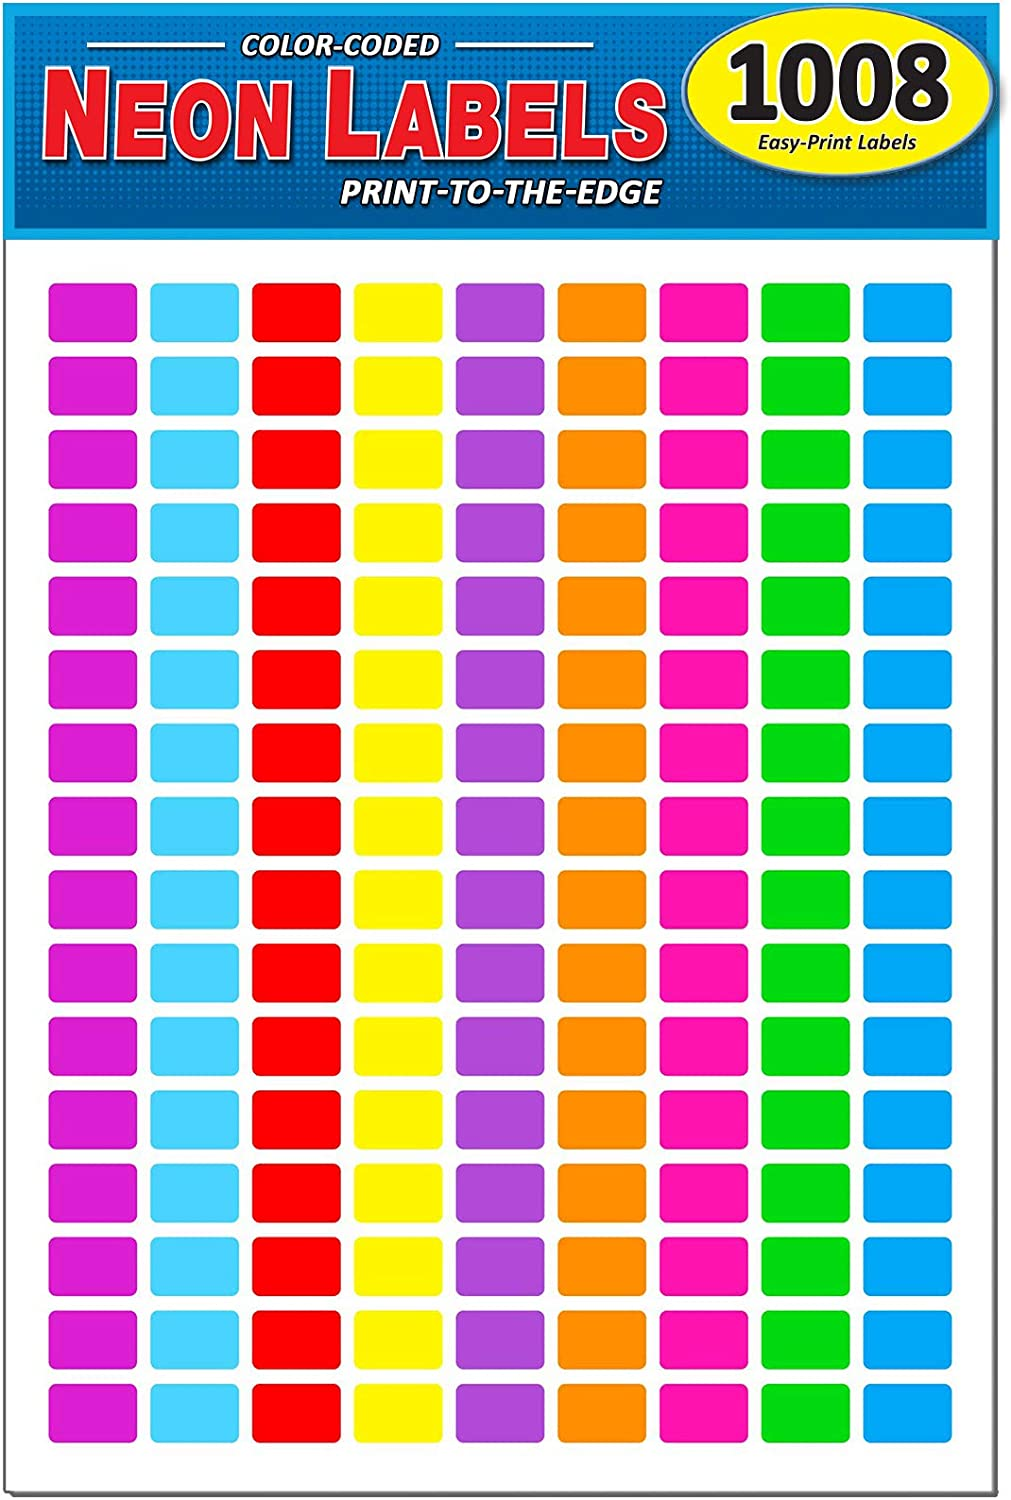 "Pack of 1008, 1/2"" x 3/4"" Rectangle Color Coding Dot Labels, 9 Bright Neon Colors, 8 1/2 x 11 Inch Sheet, Fits All Laser/Inkjet Printers, 144 Labels per Sheet, 0.5 x 0.75 Inches"